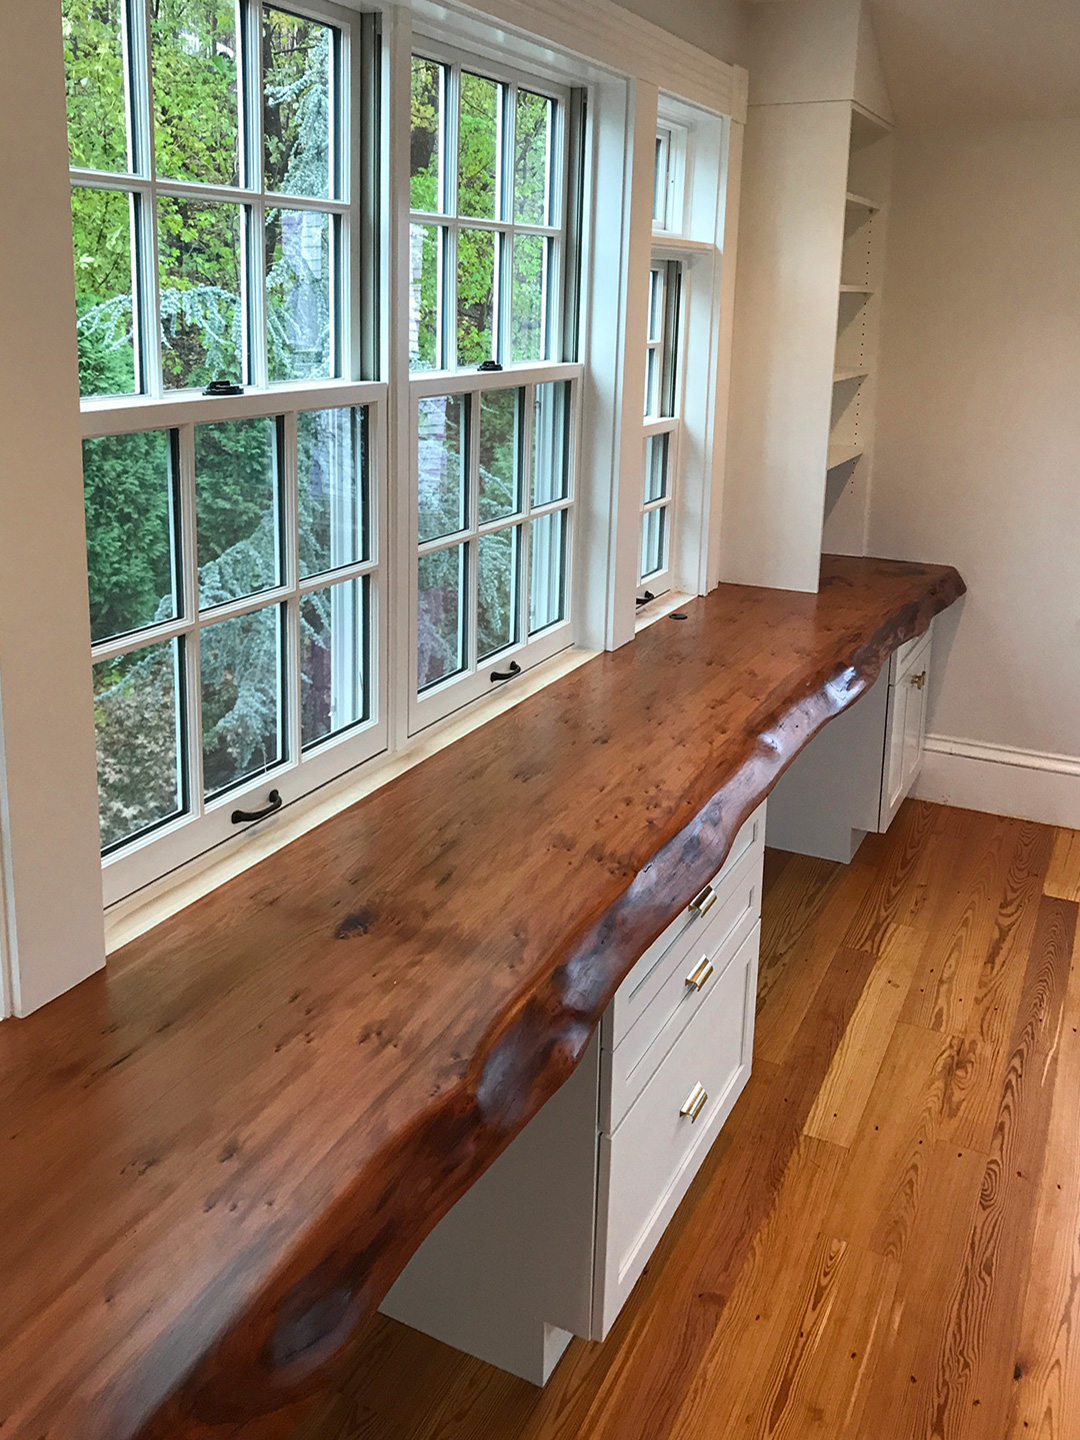 Salvaged Redwood Slab Desk And Reclaimed Heart Pine Flooring In Home Office